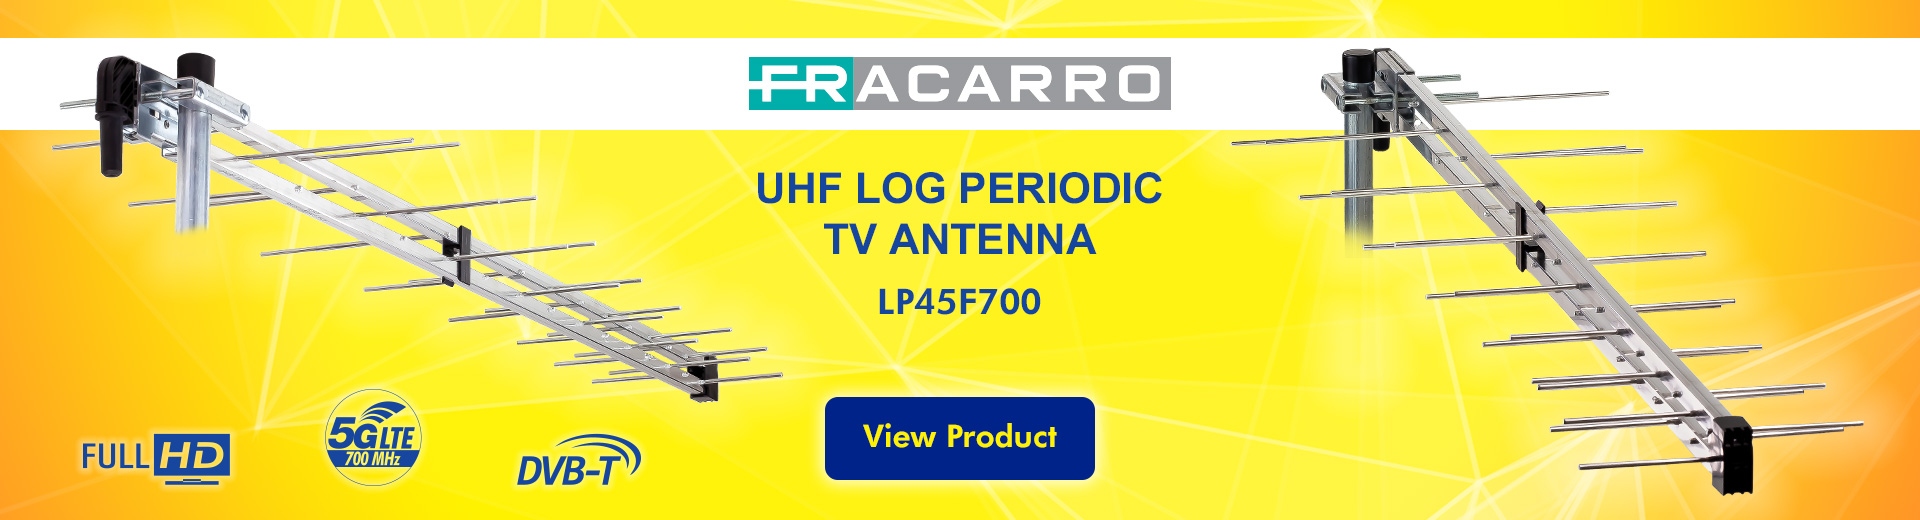 Laceys.tv Log Periodic Antenna LP45F700 Fracarro